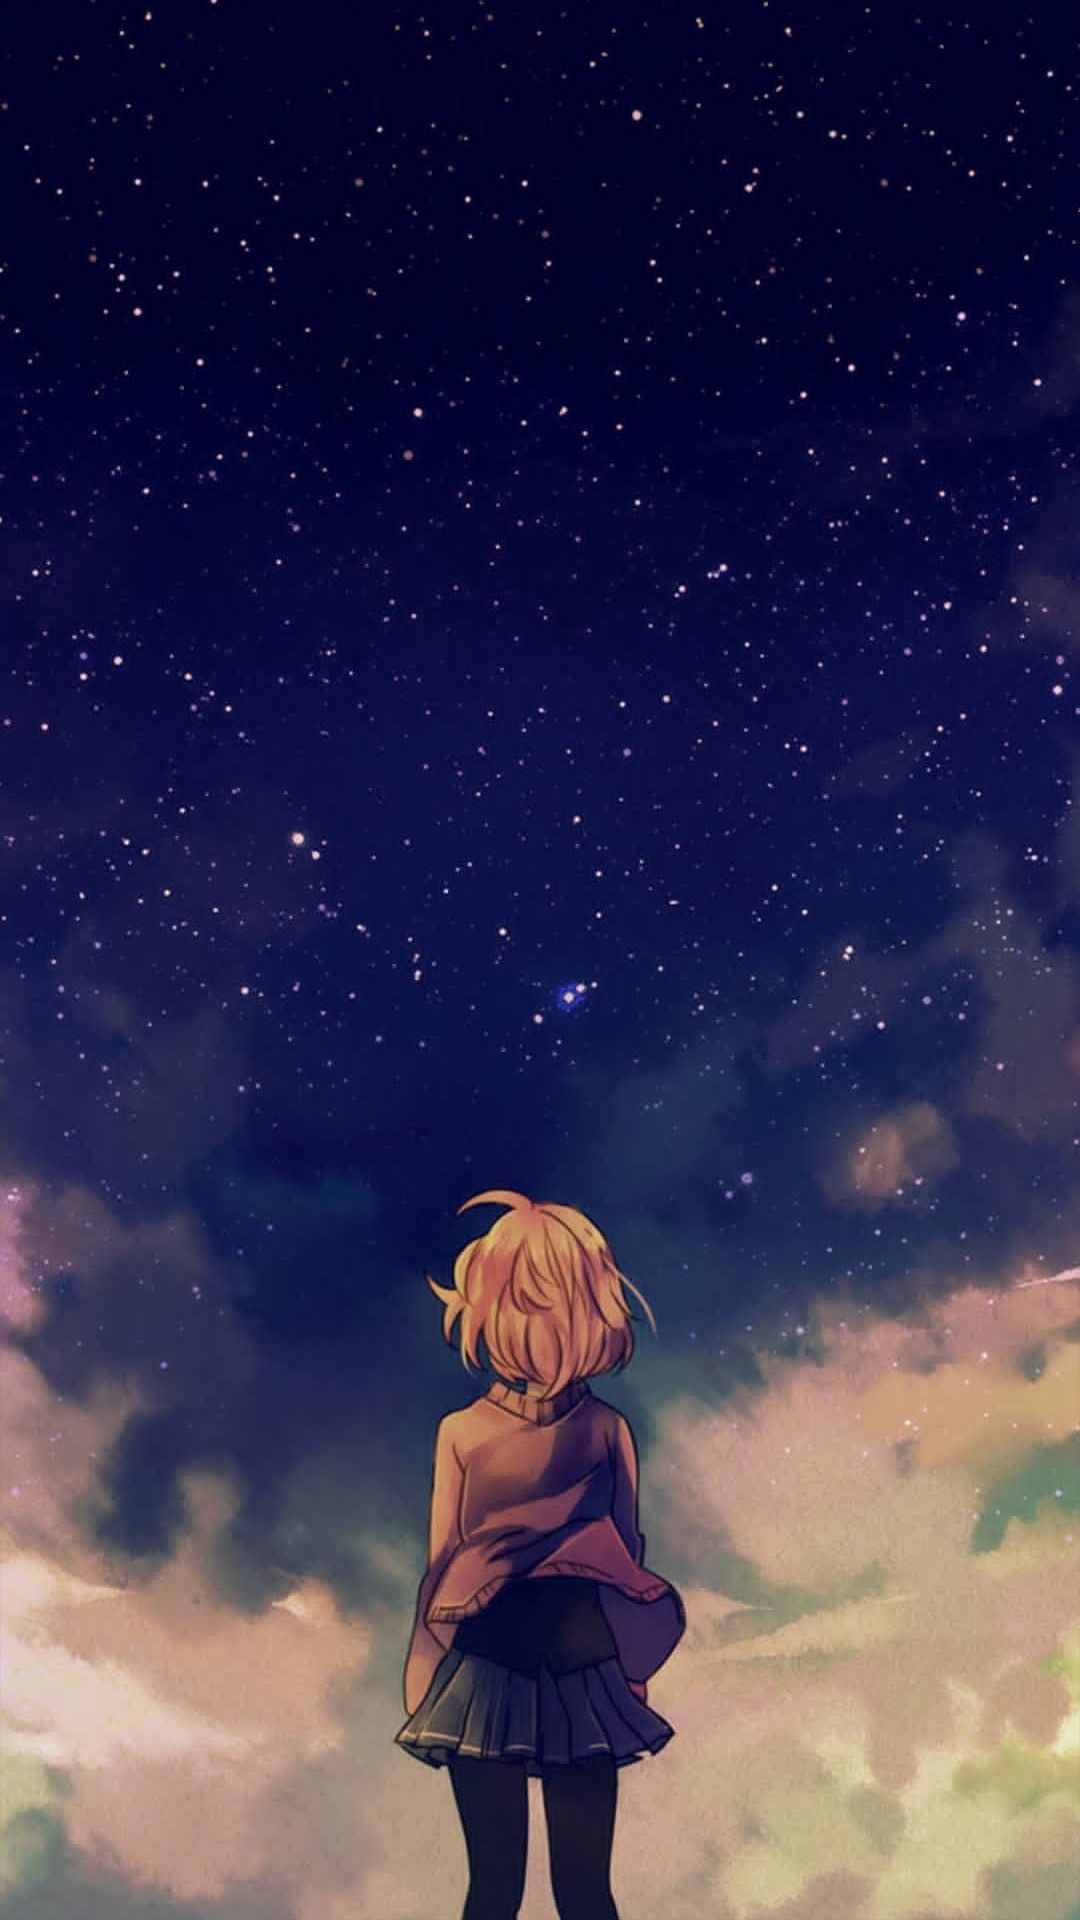 Pin By Gaybish On Ooo Anime Wallpaper Iphone Wallpaper Iphone Love Anime Drawings